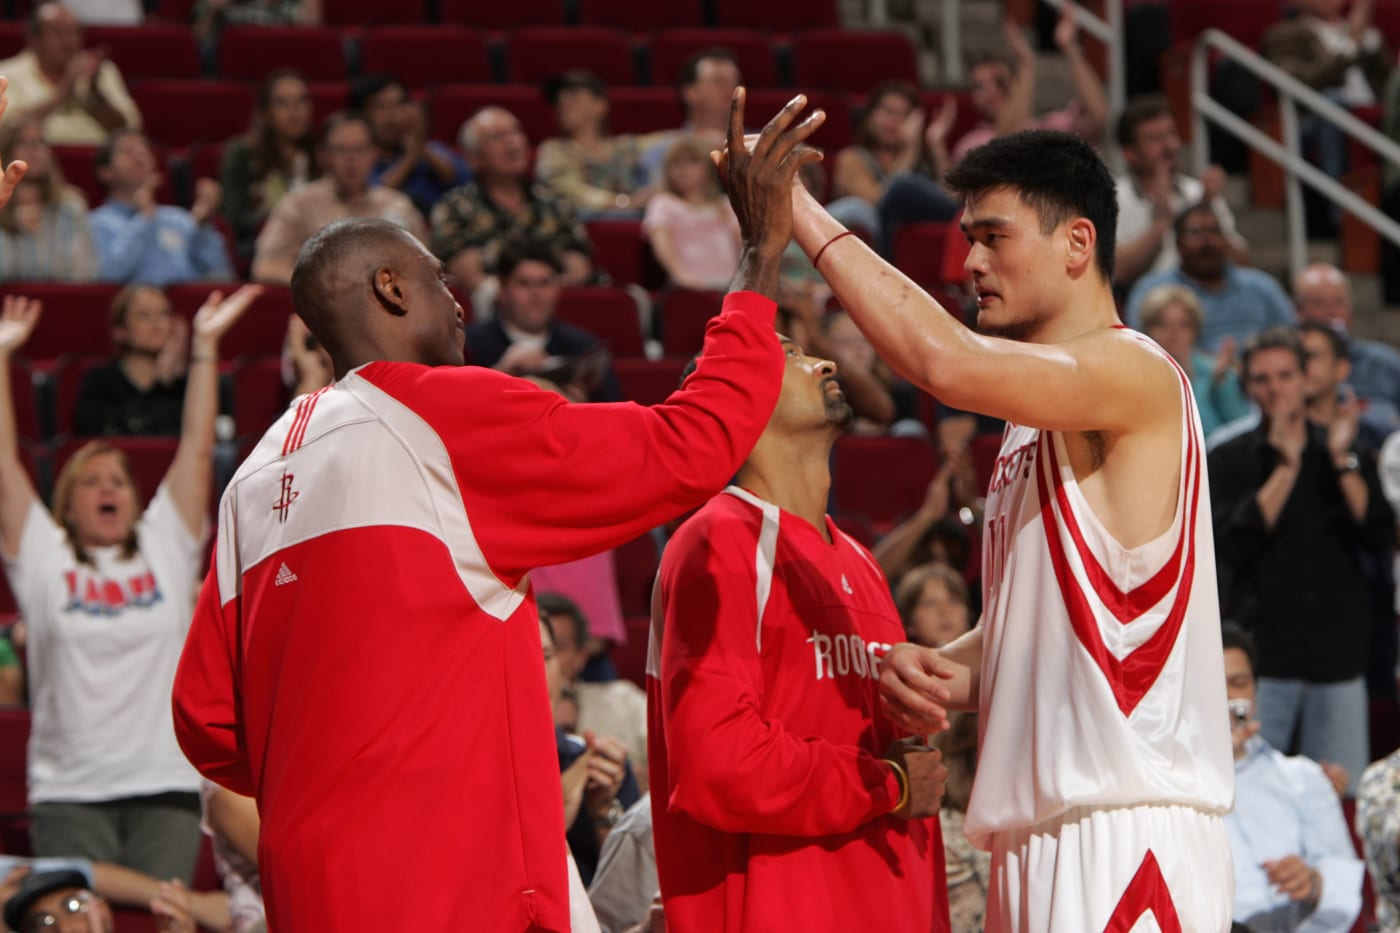 This is a photo of Dikembe Mutombo and Yao Ming